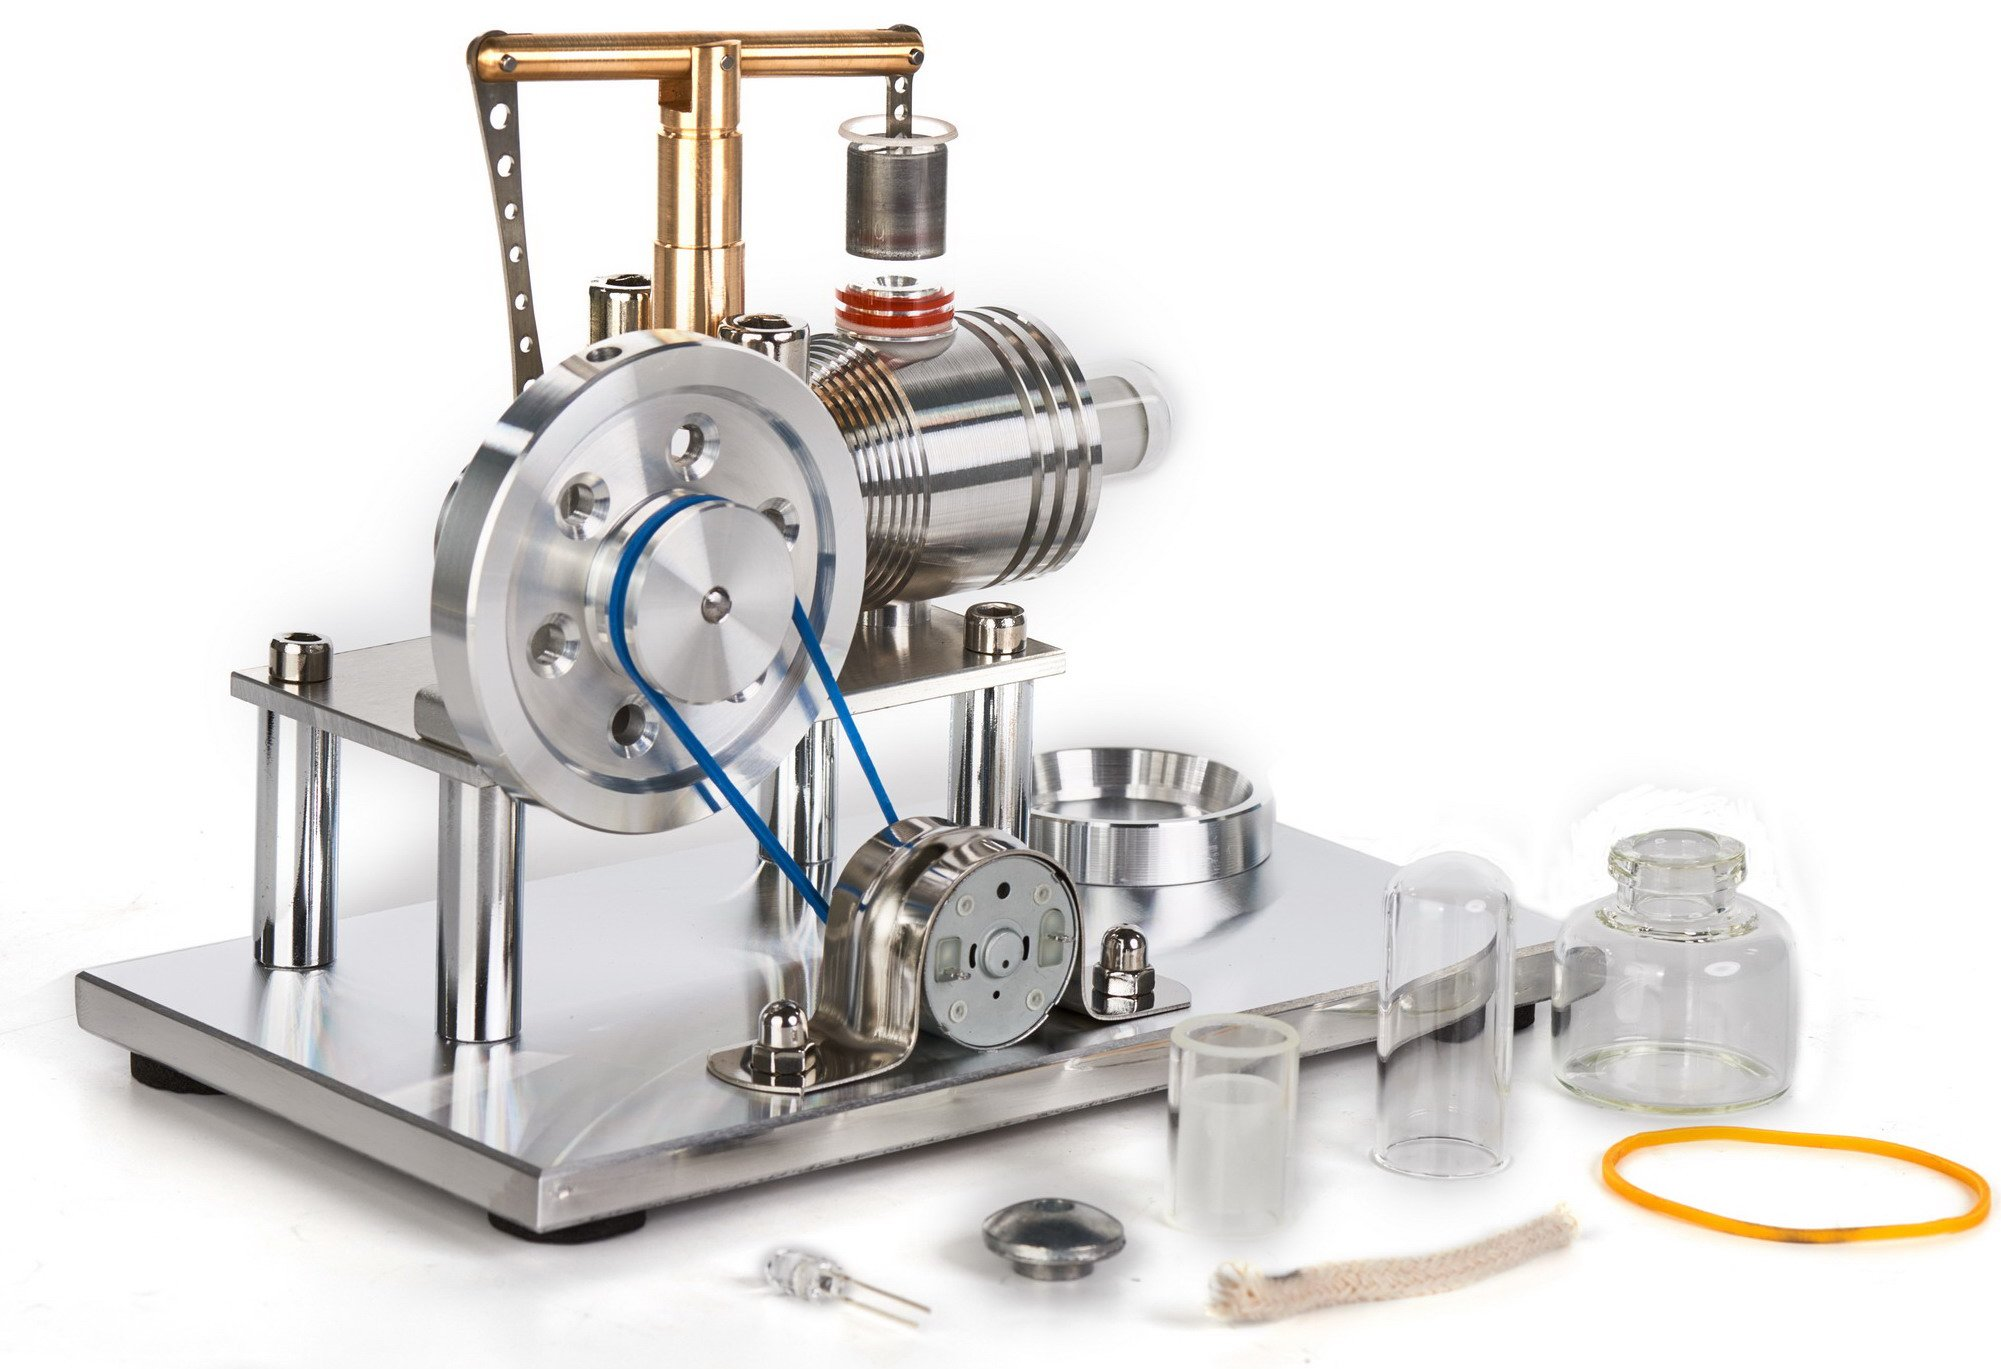 Sunnytech Hot Air Stirling Engine Motor Model Educational Toy Electricity Generator Colorful LED SC (SC02M)